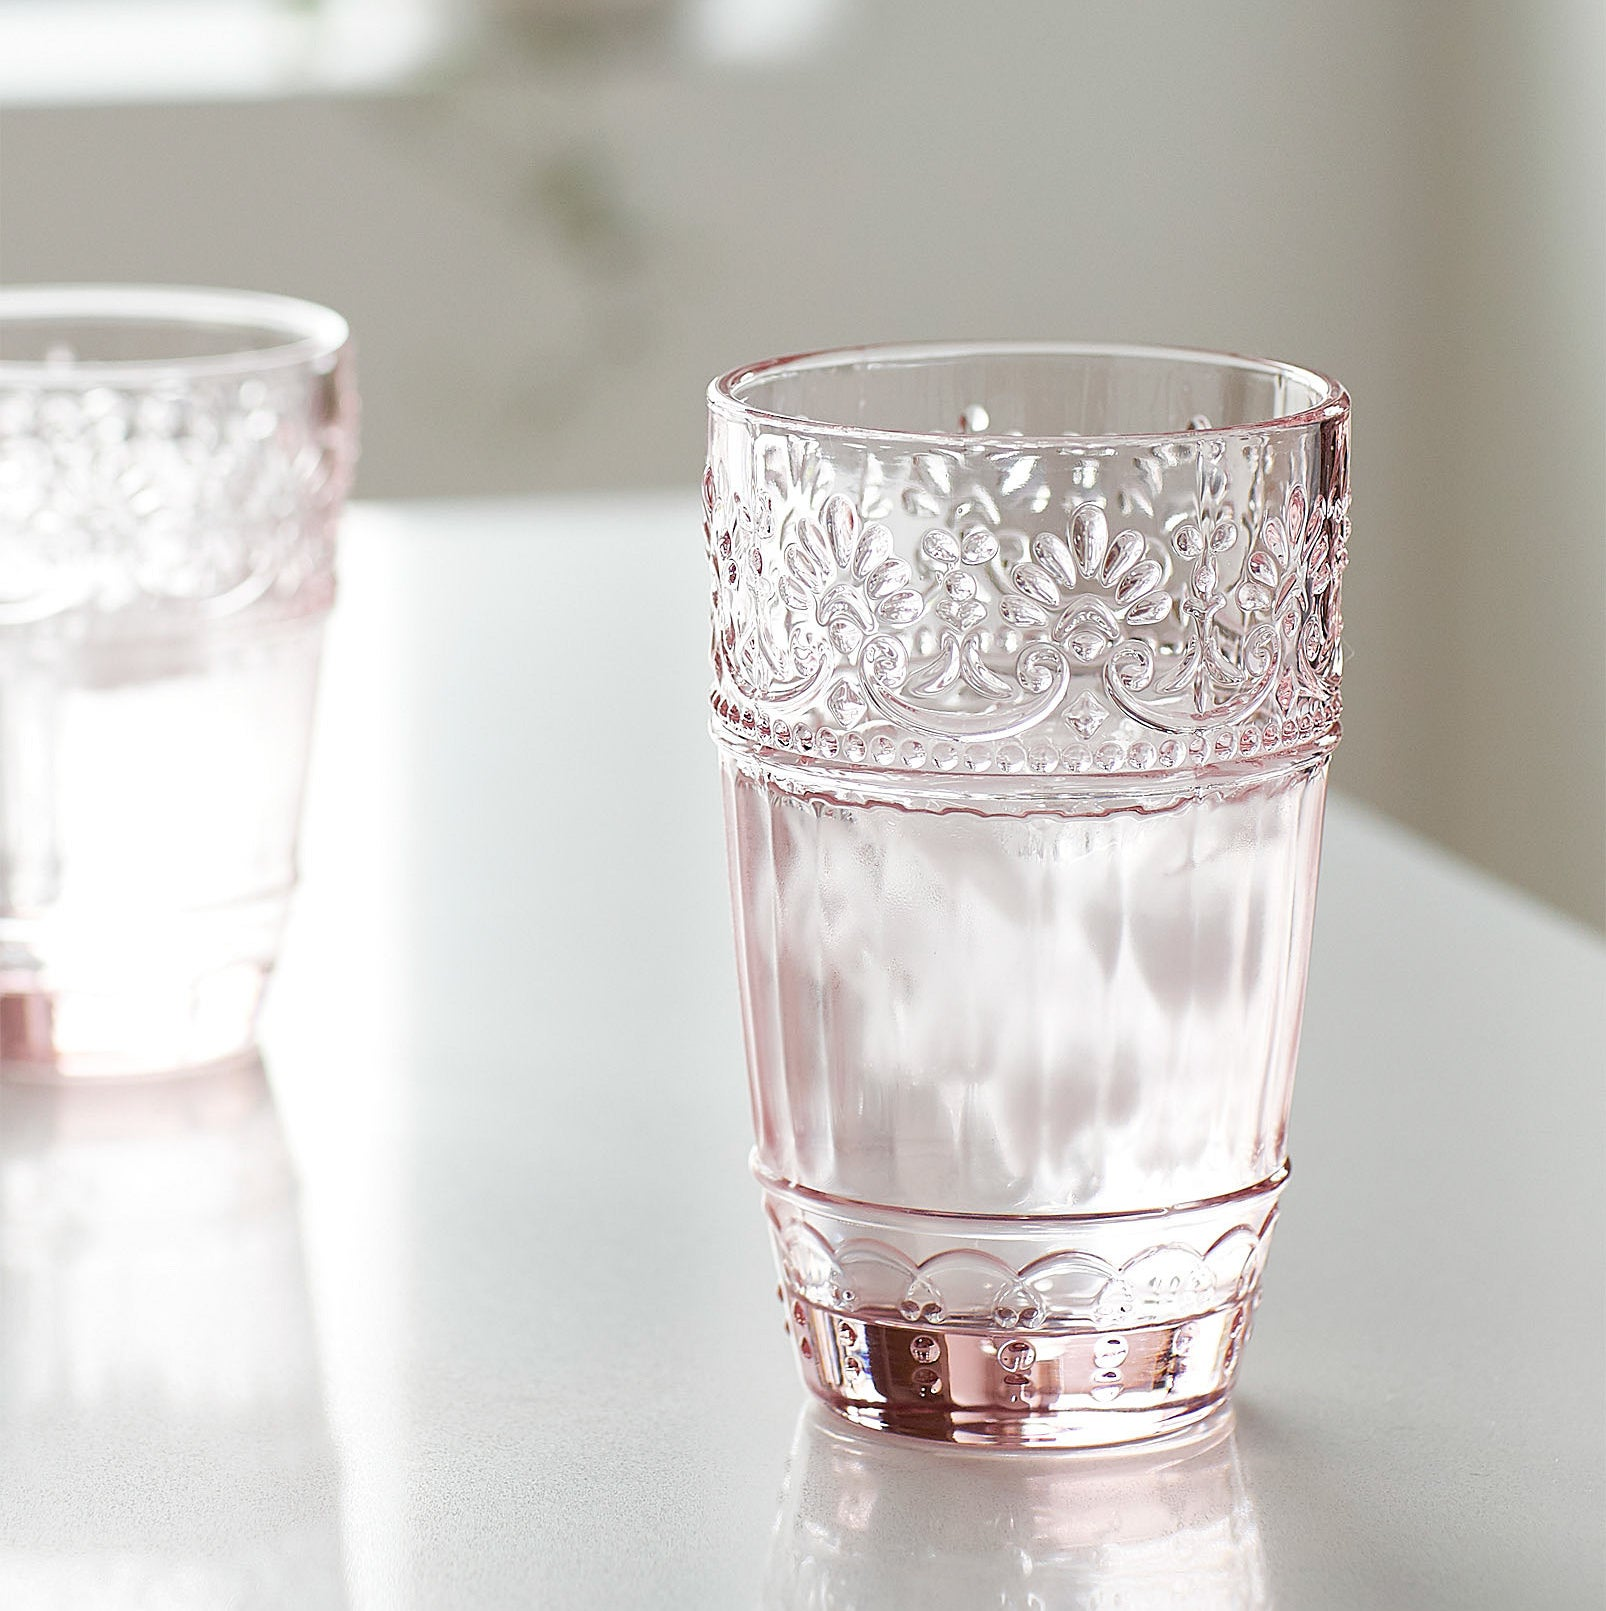 A rosy glass with a floral trim